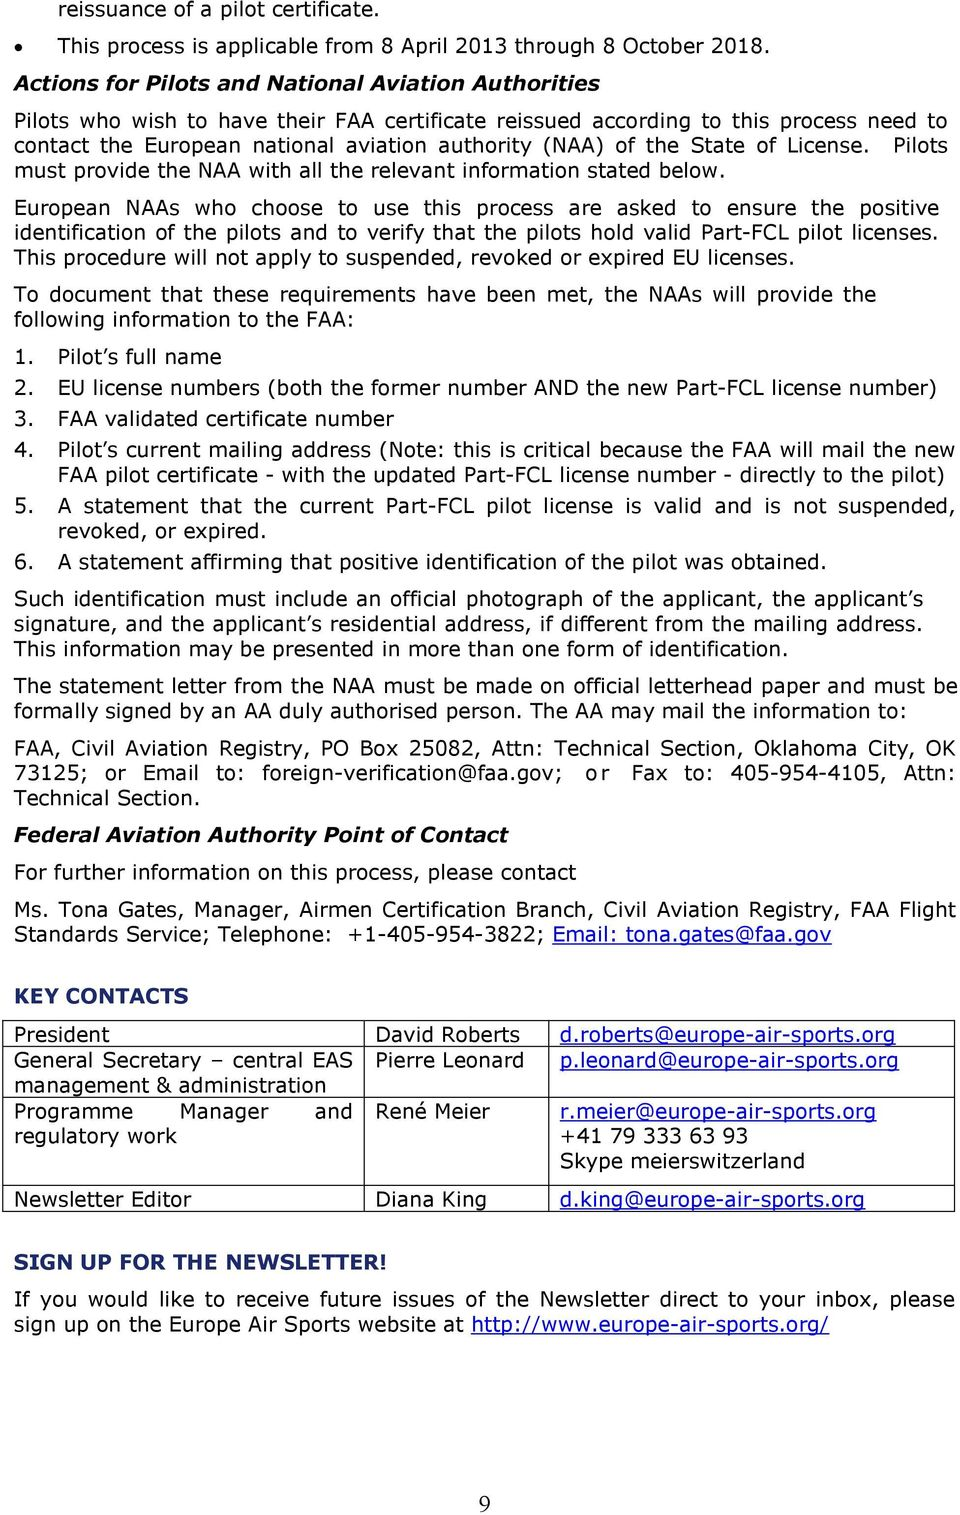 the State of License. Pilots must provide the NAA with all the relevant information stated below.